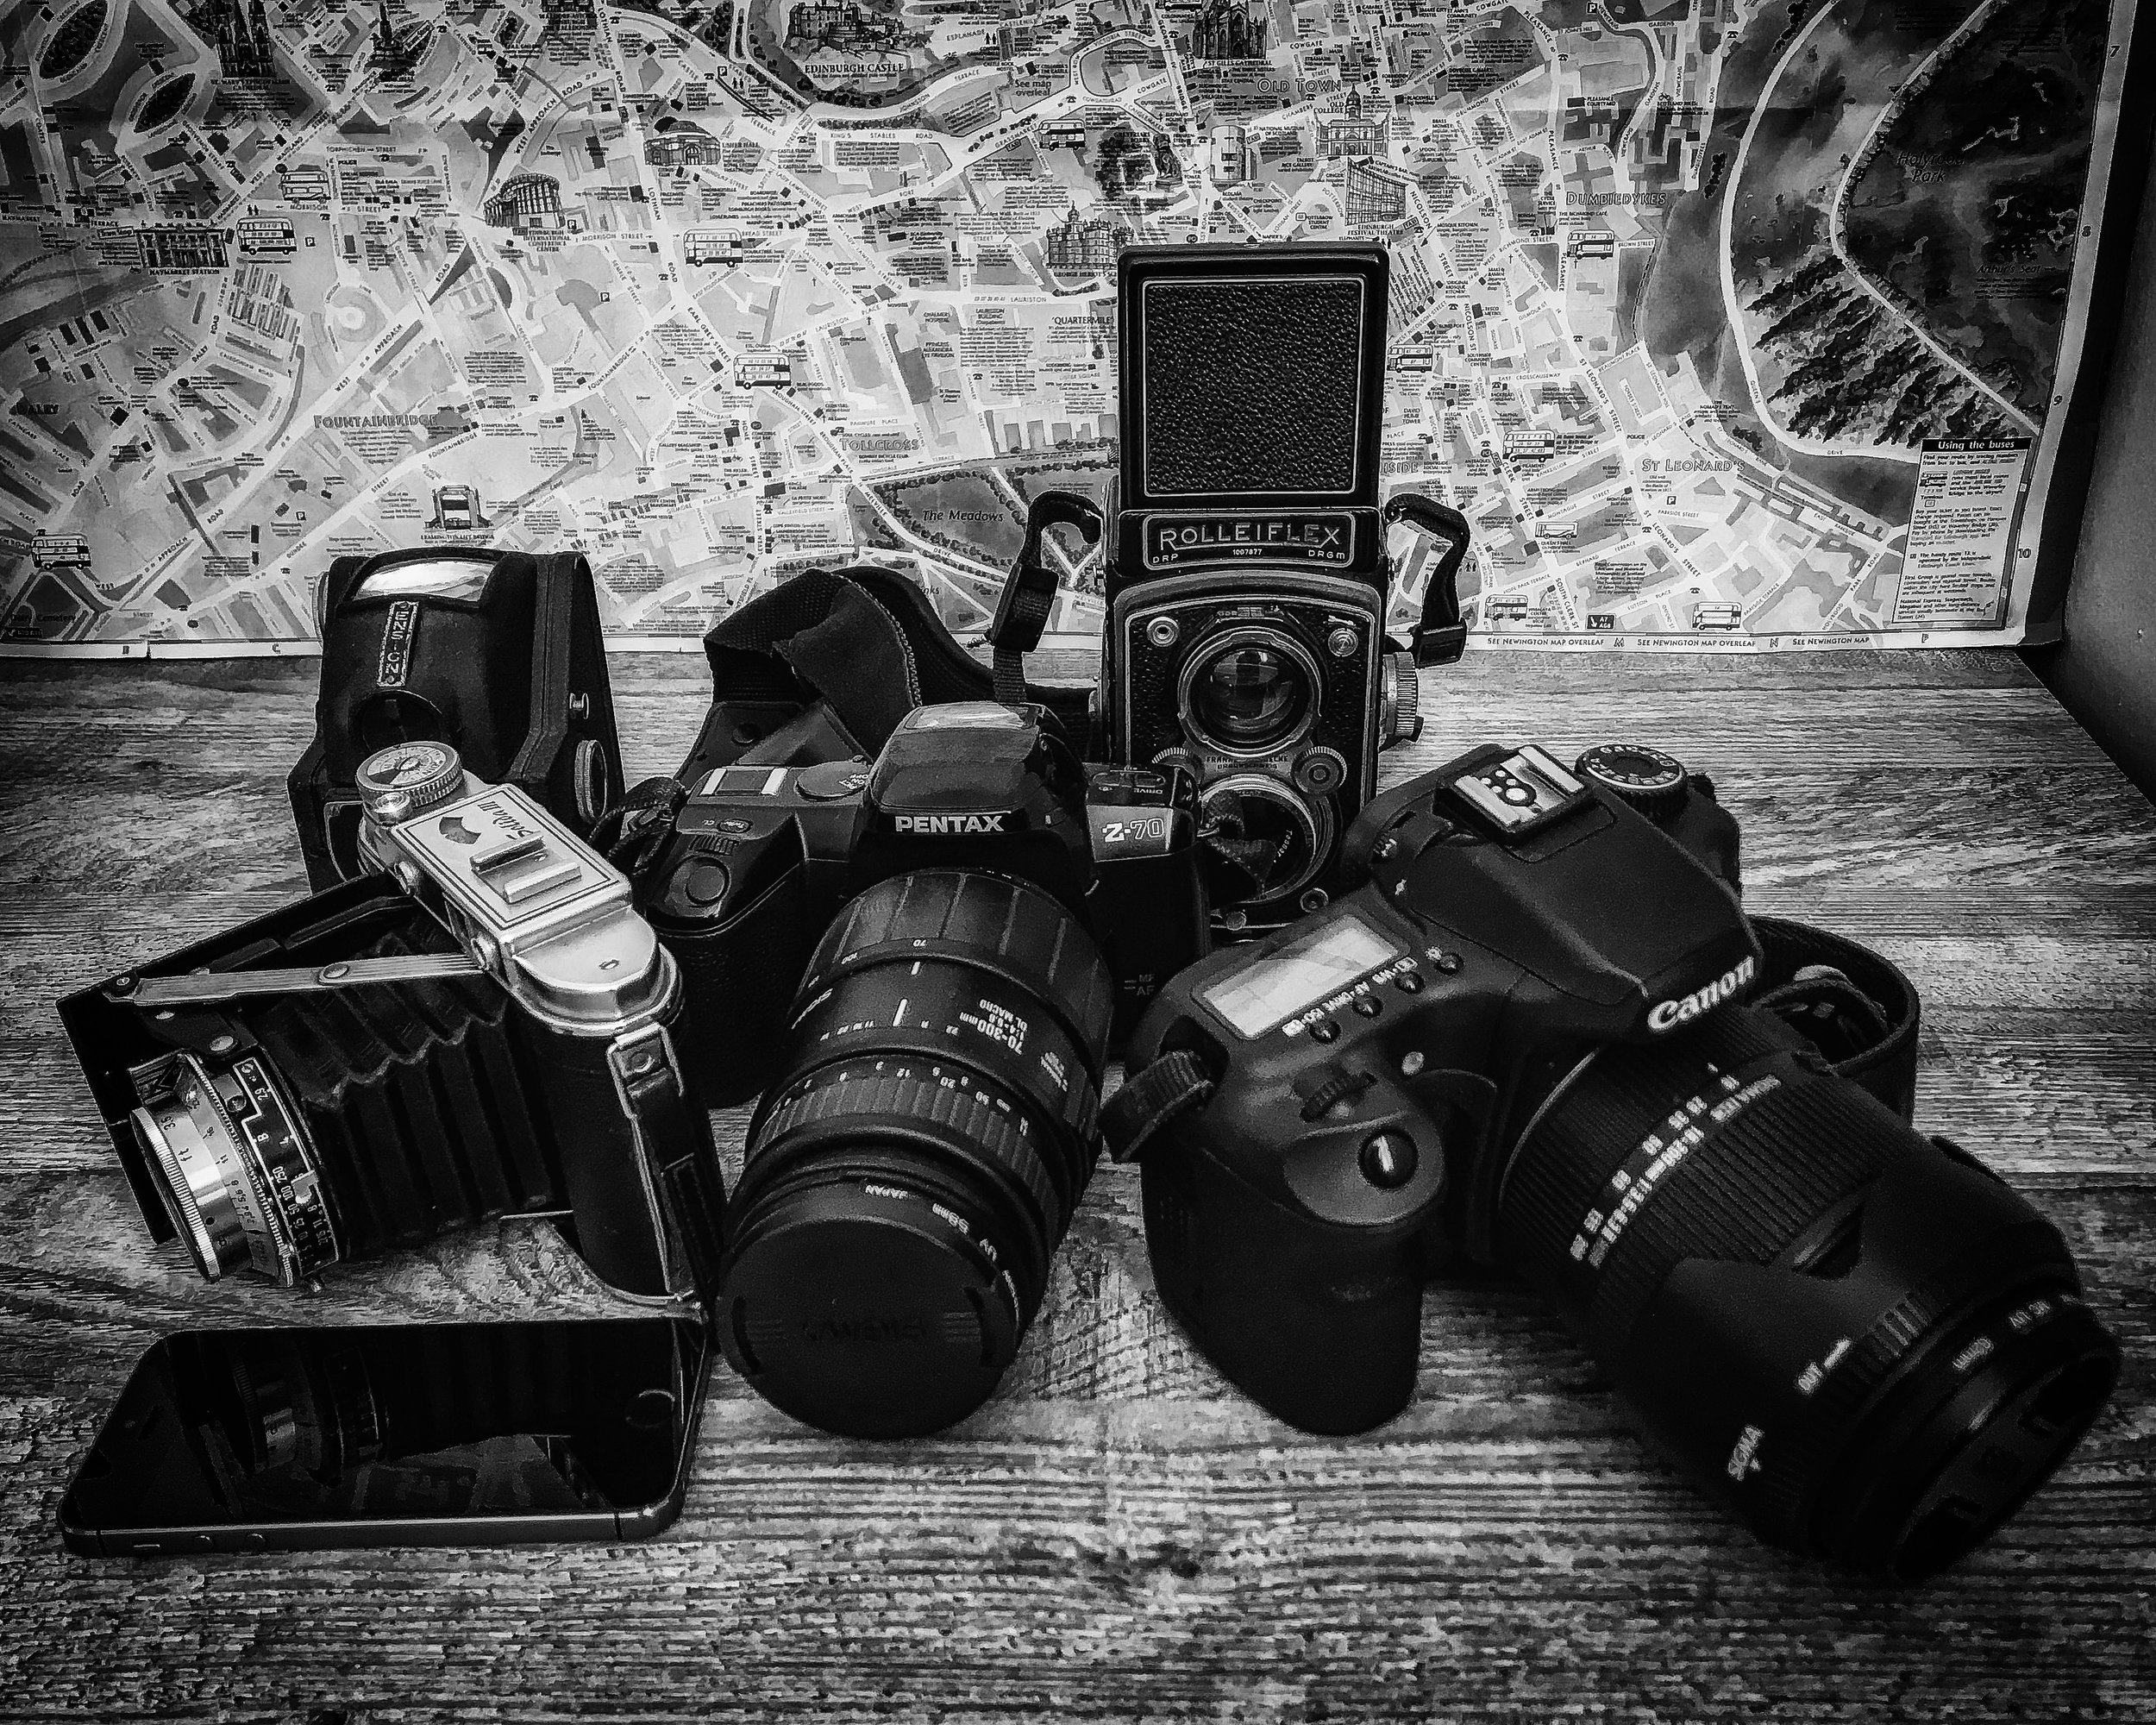 Edinburgh Photography Walking Tours Cameras